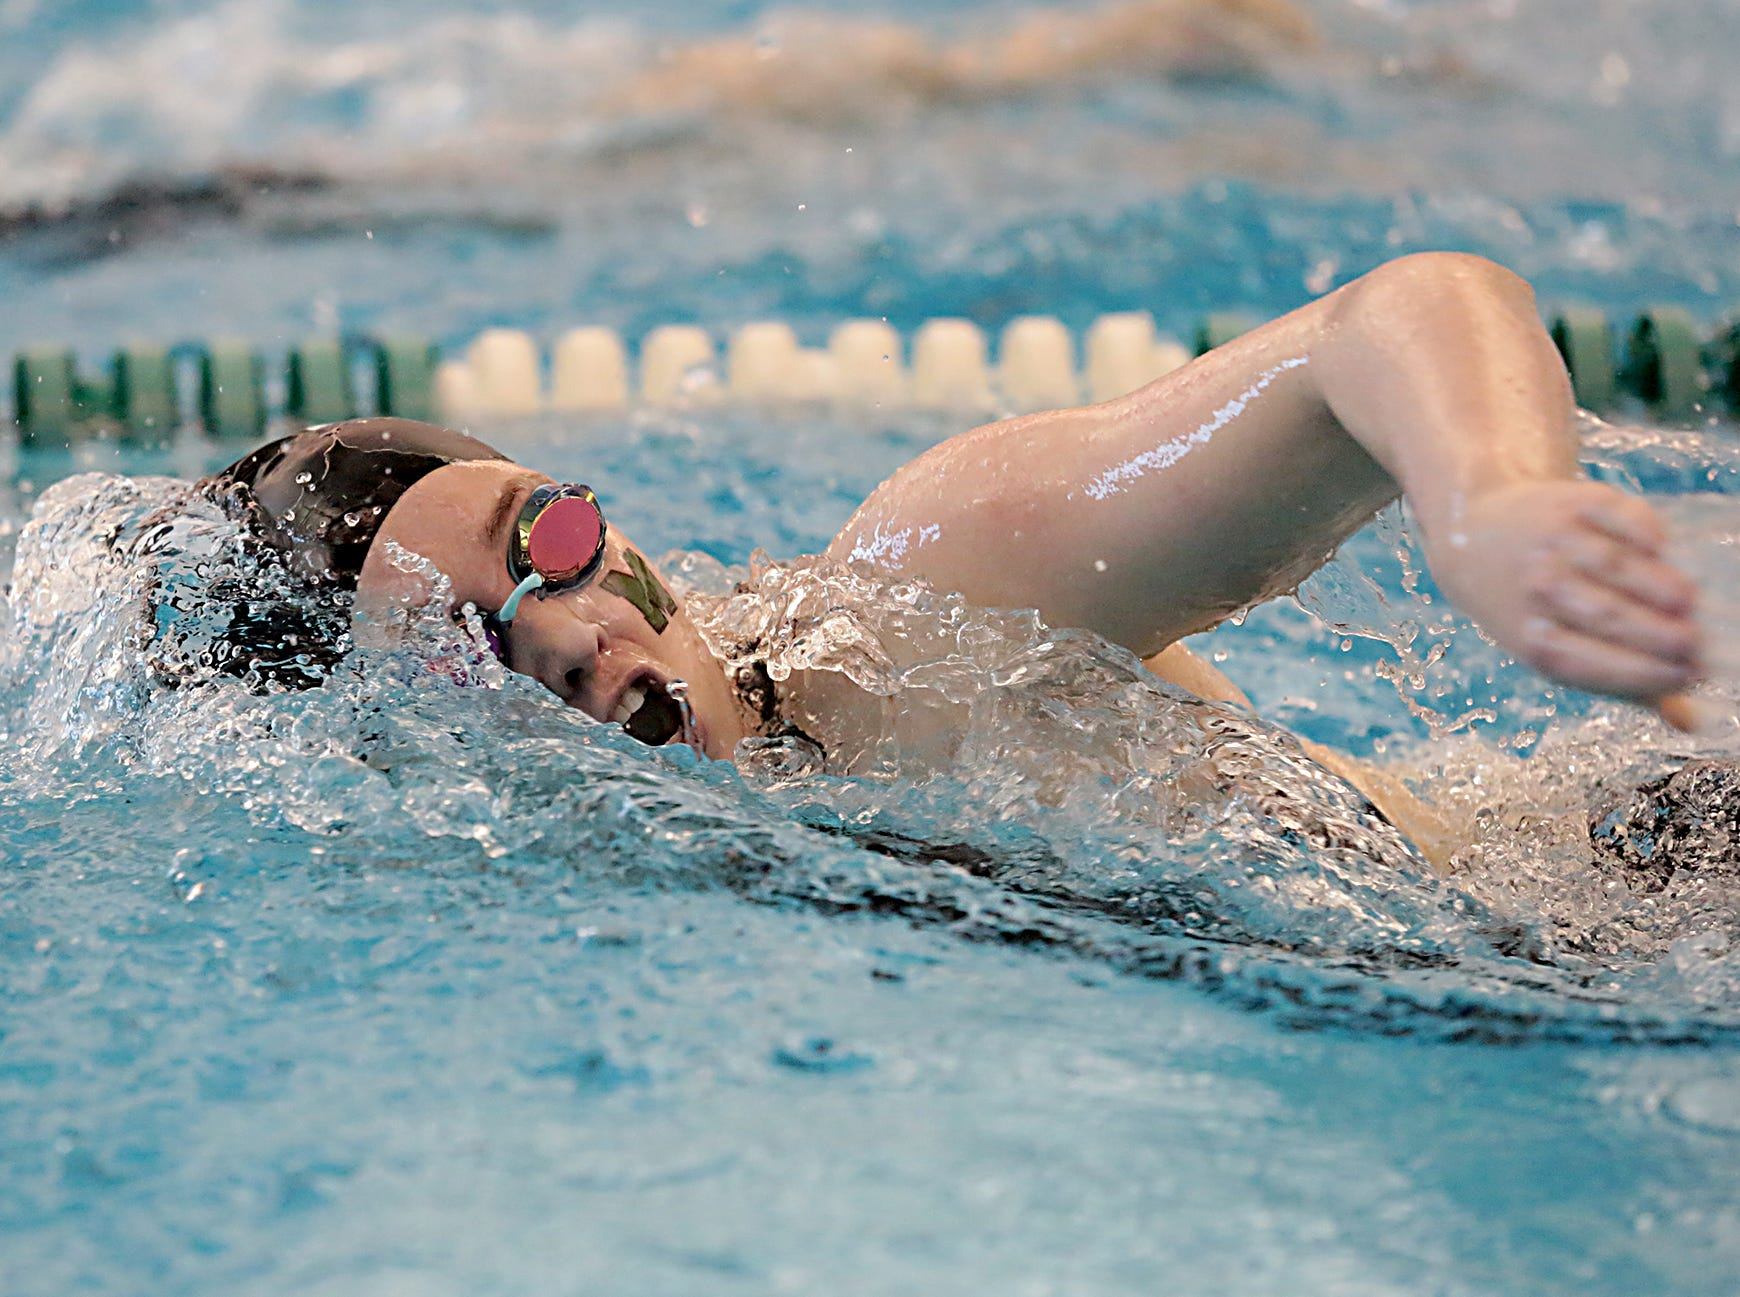 Allison Fries, from Mason, competes in the 200-yard freestyle during the Division I and II sectionals at Mason High School Saturday, Feb. 9, 2019.